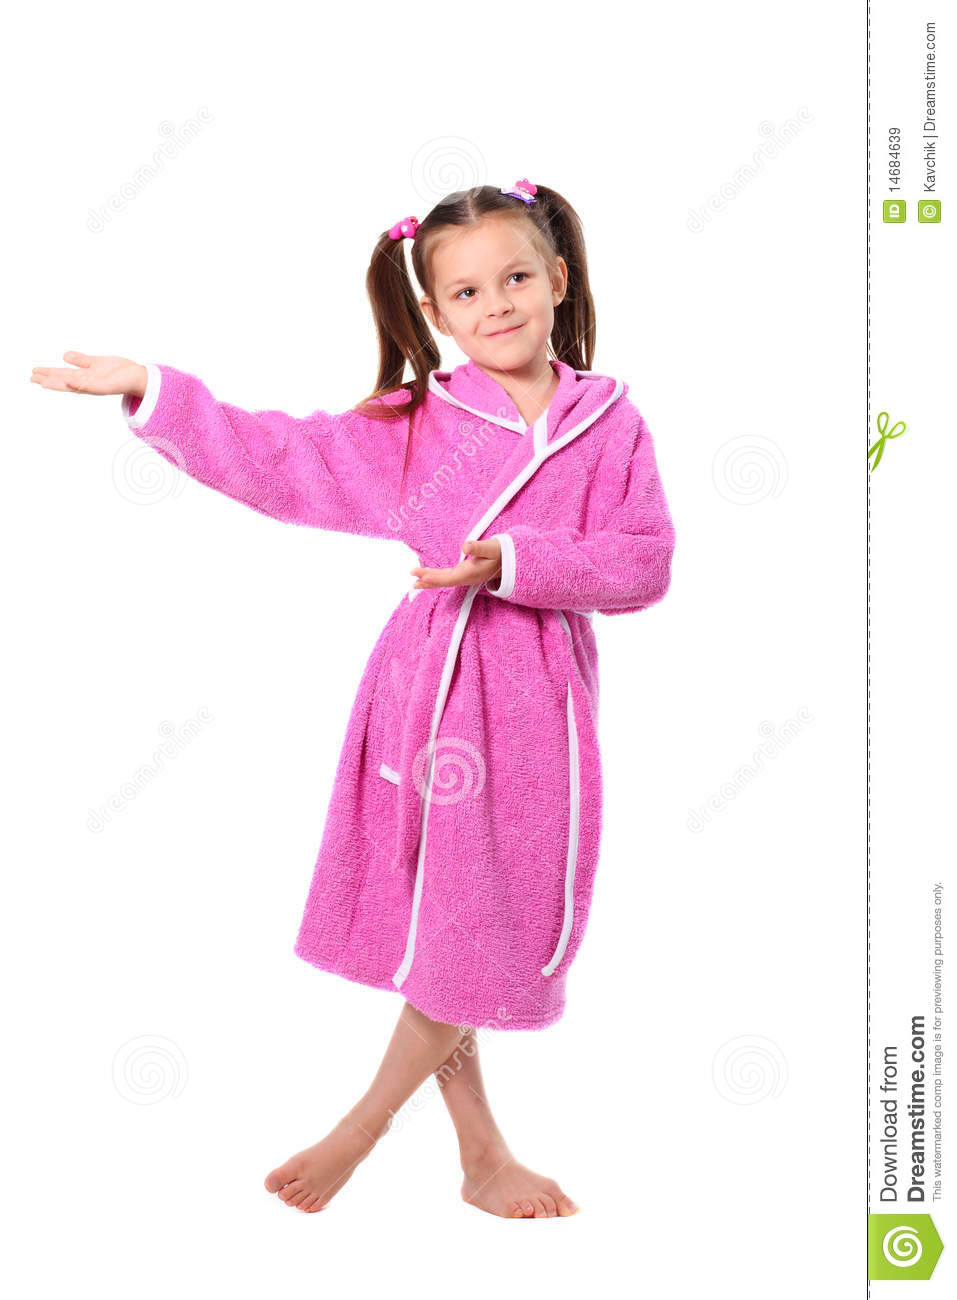 Little Girl In Dressing Gown Stock Image - Image of cheerful, child ...